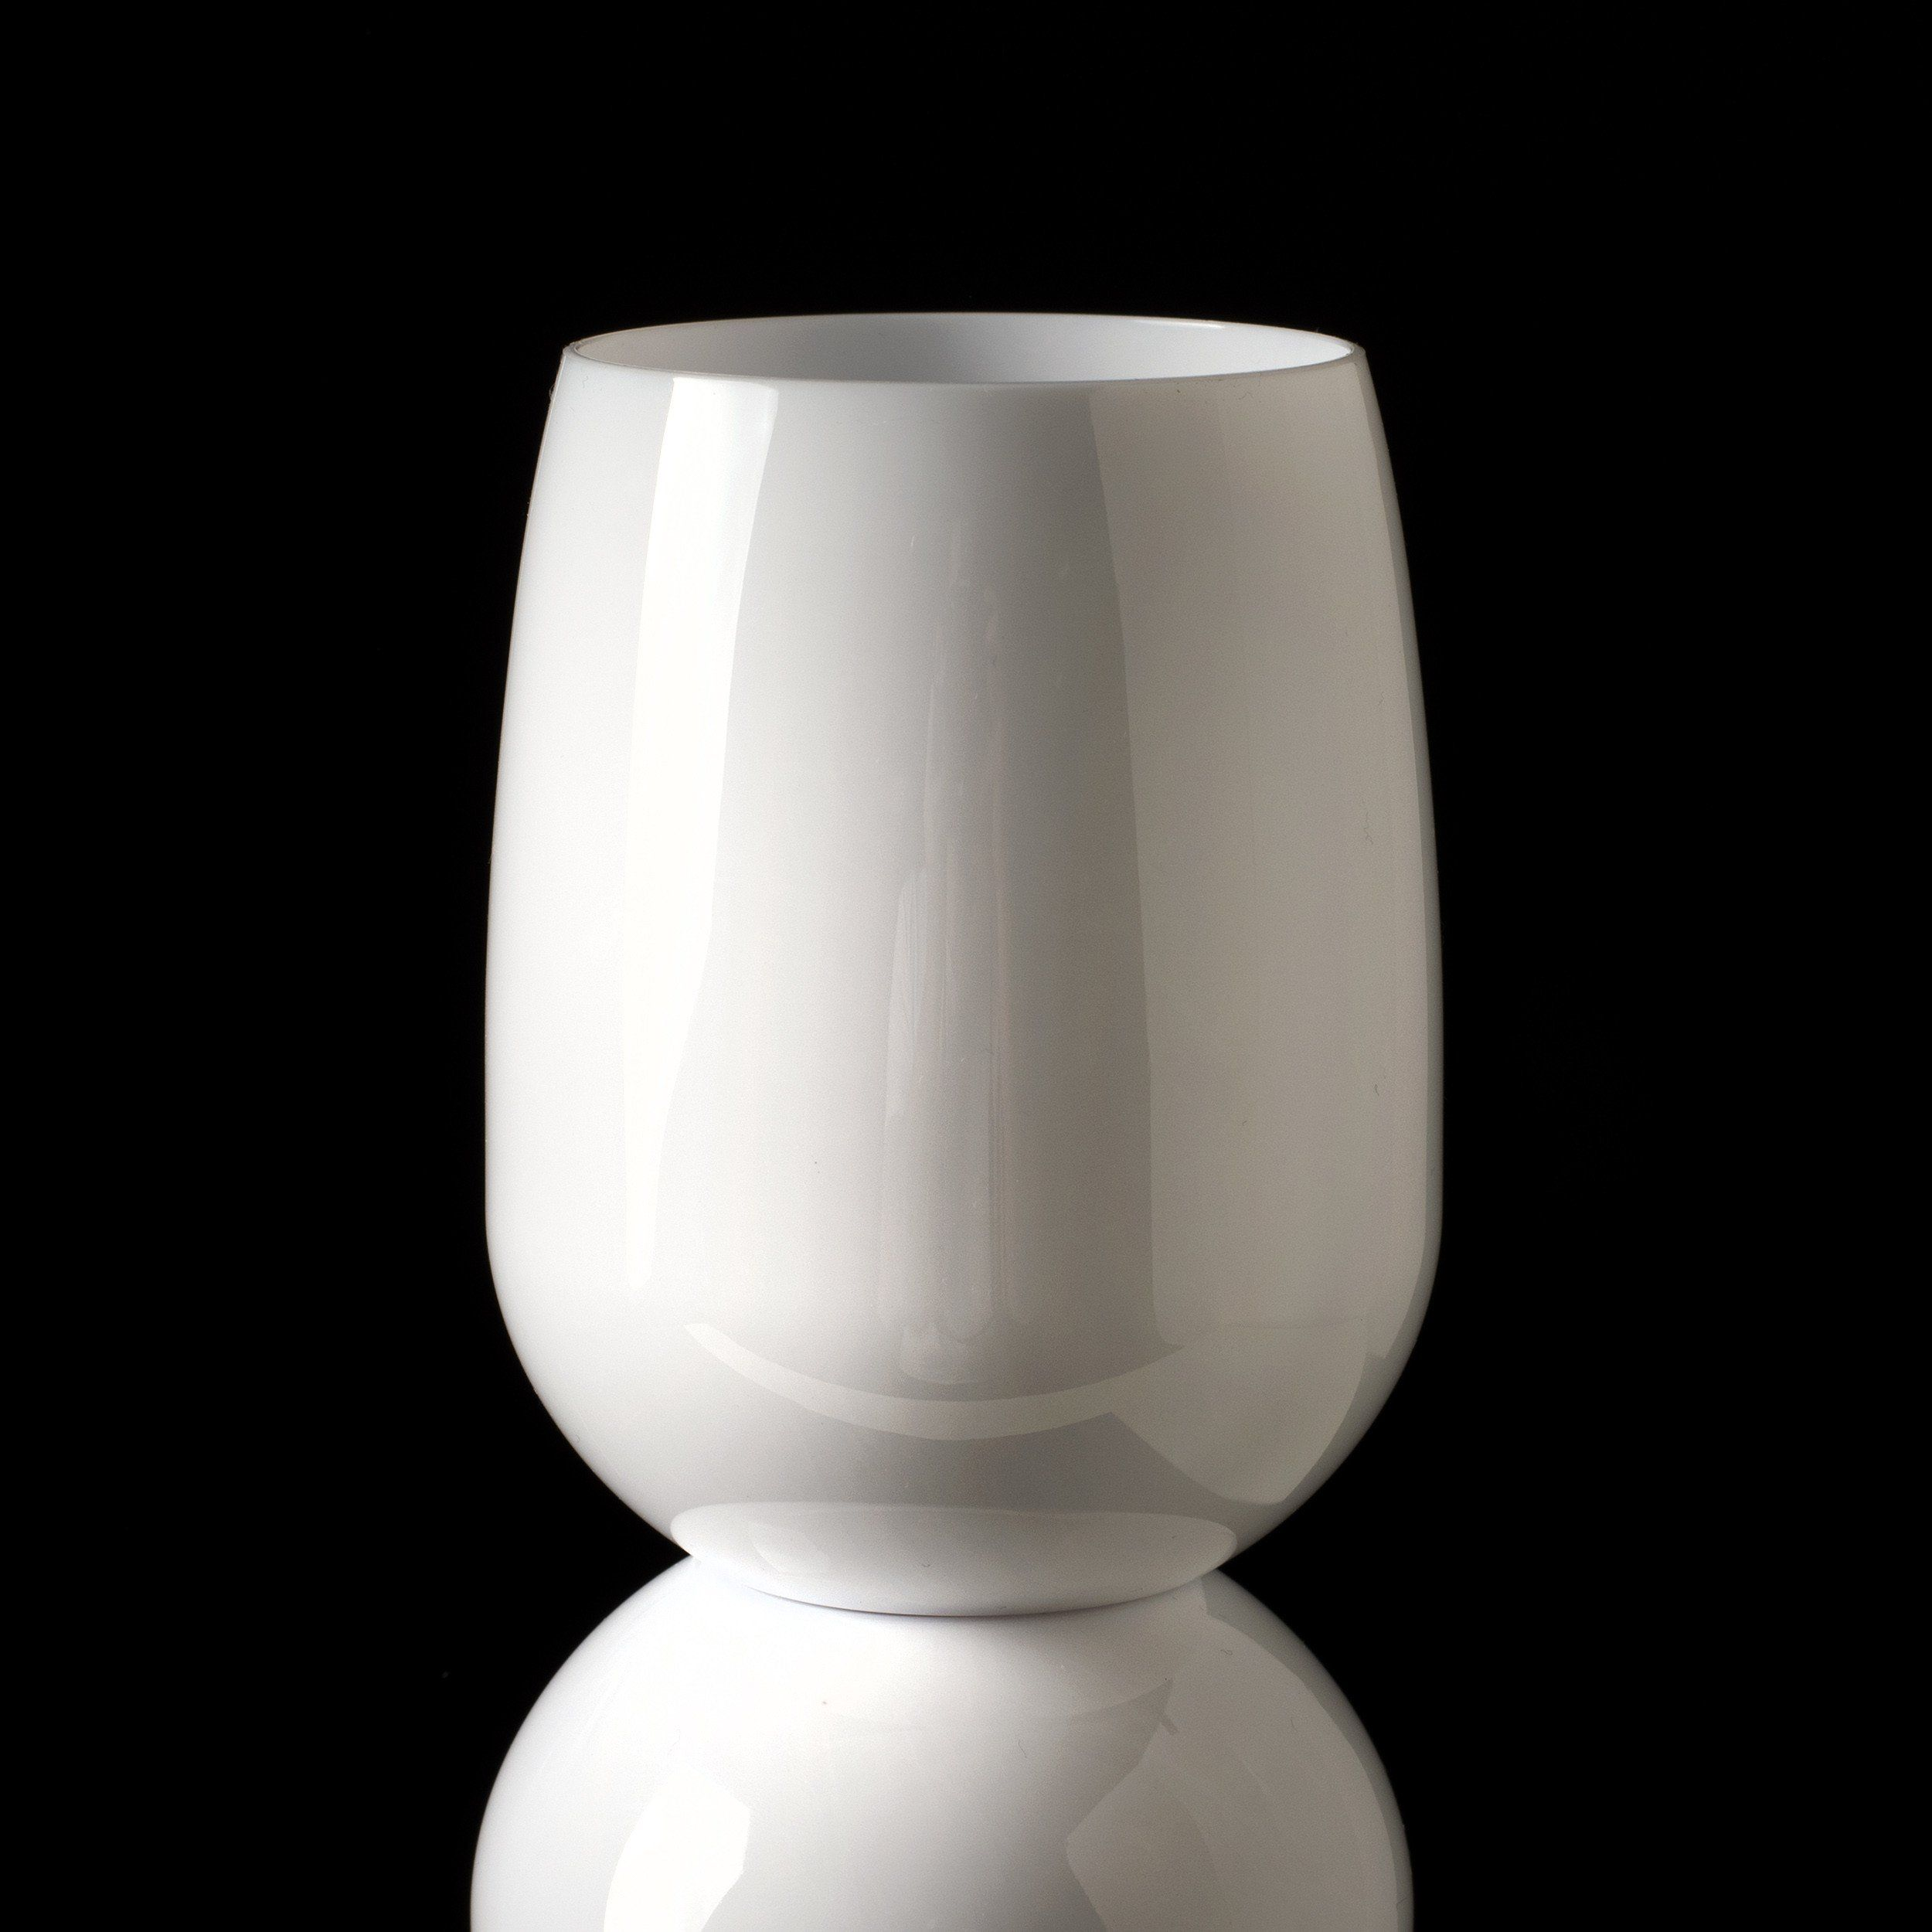 f93244f1306 symGlass Drinkware is a fabulous BPA free alternative to traditional  glassware. Each piece is crafted from an advanced, durable polymer.